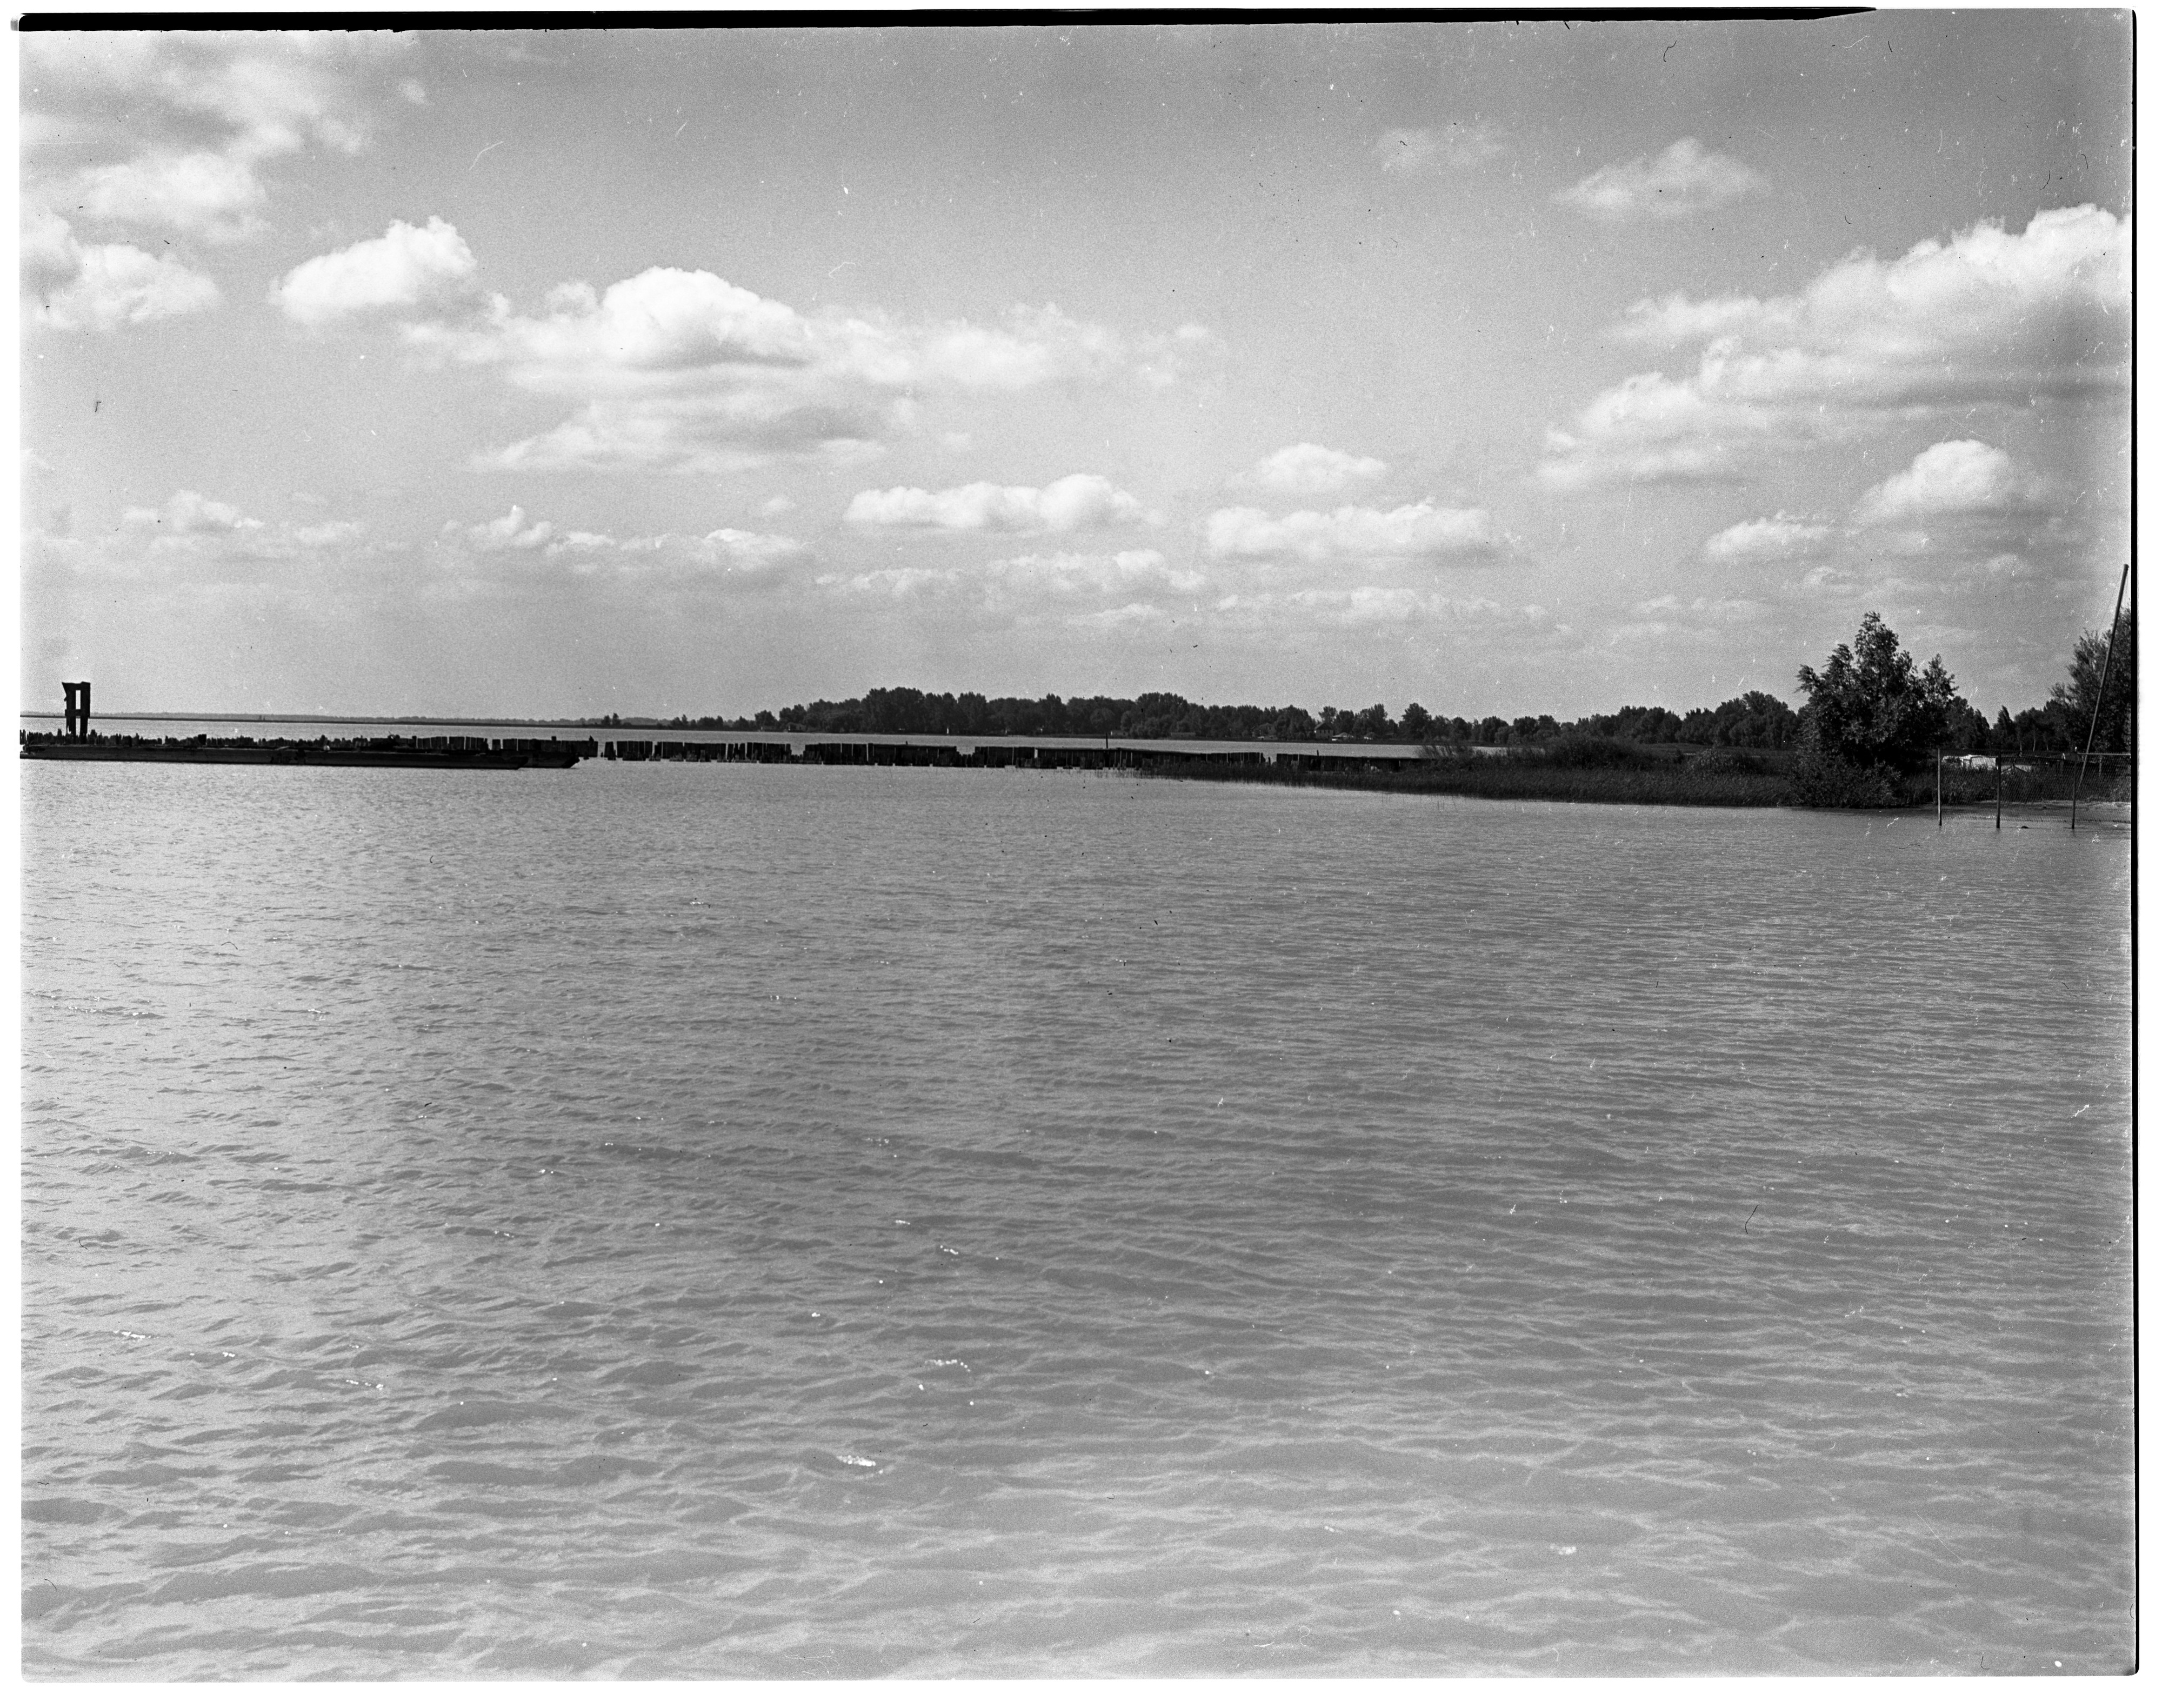 Clinton River and St Clair Shores image